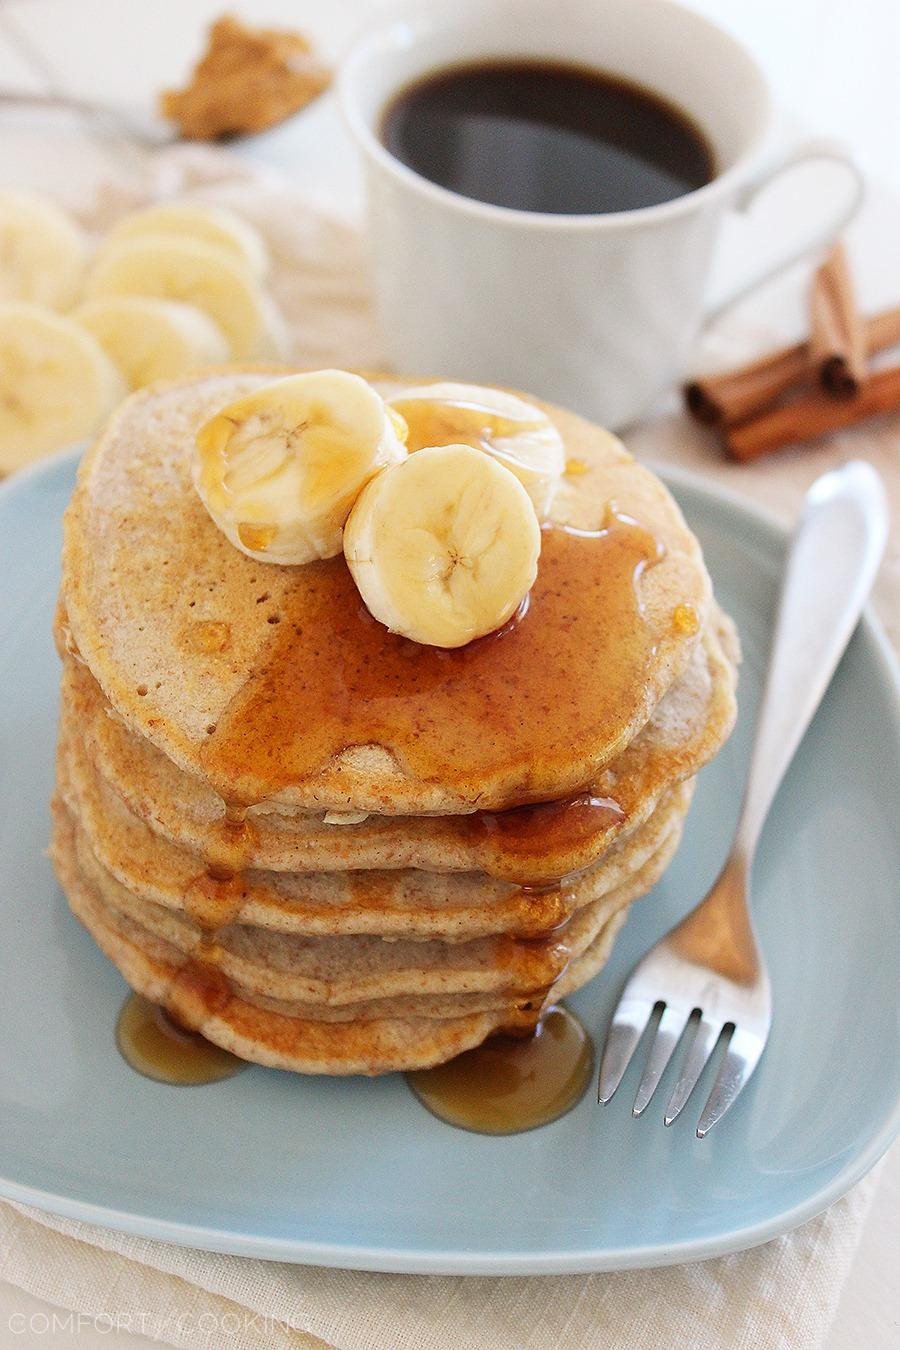 Peanut Butter Banana Pancakes  Whole Wheat Peanut Butter Banana Pancakes